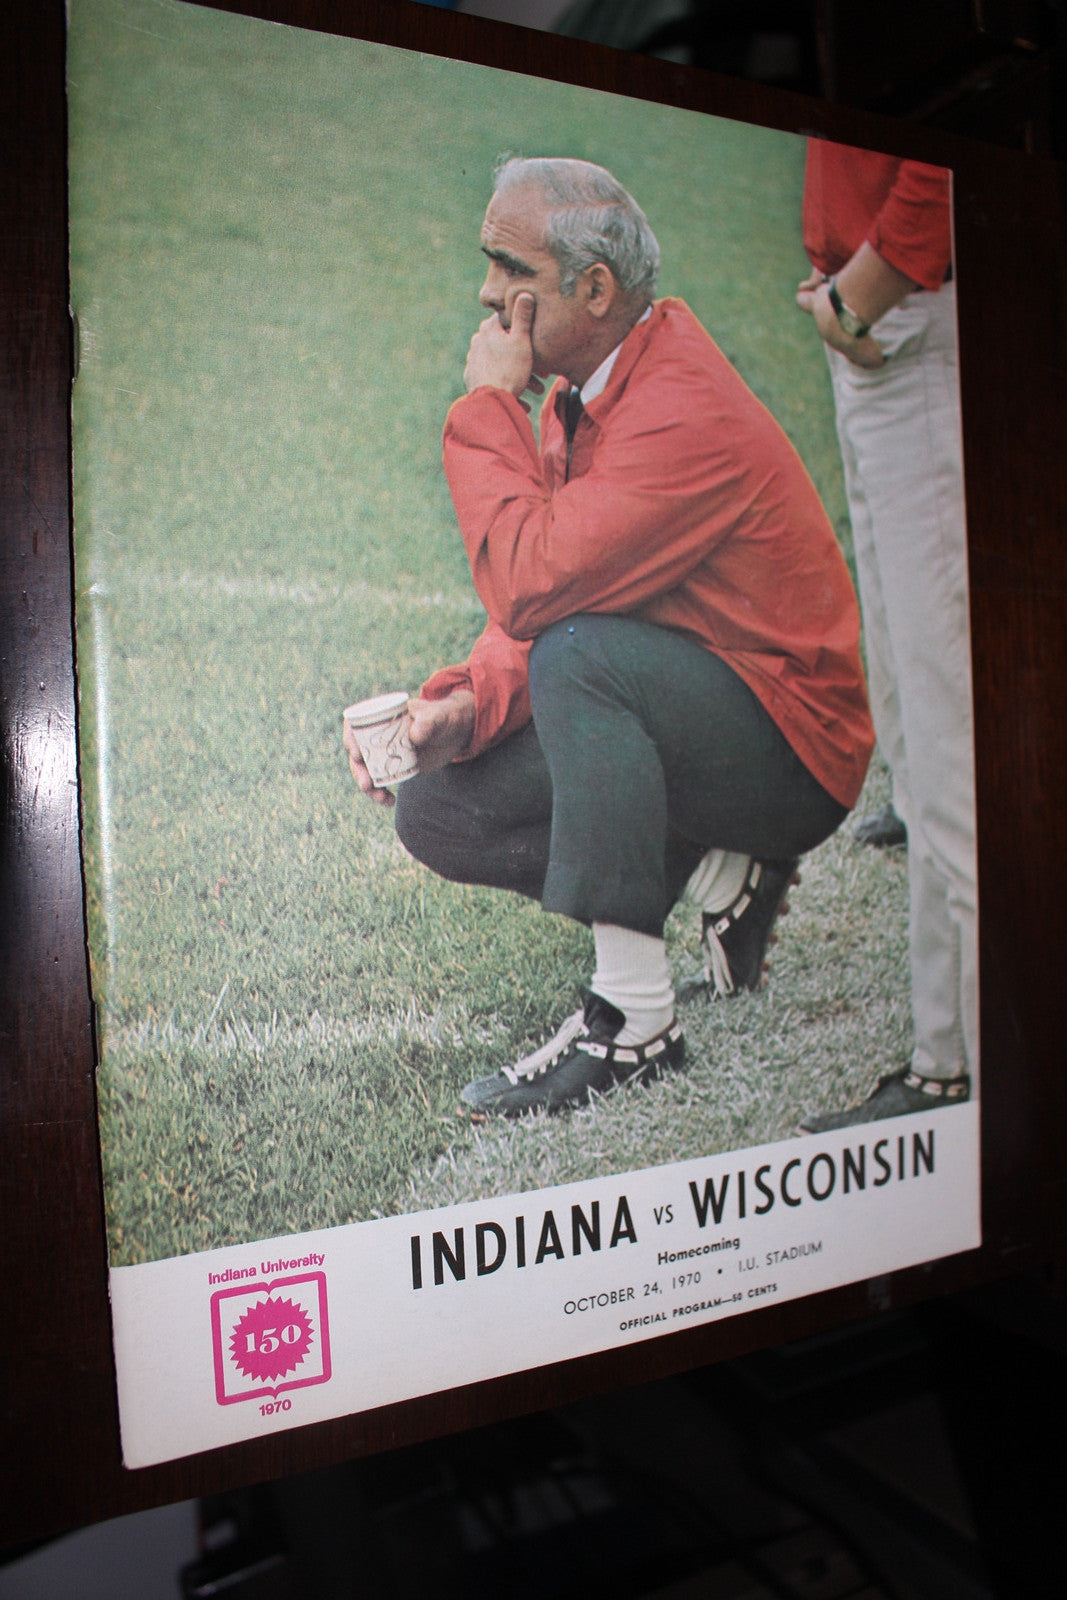 1970 Indiana University vs Wisconsin Football Program - Vintage Indy Sports